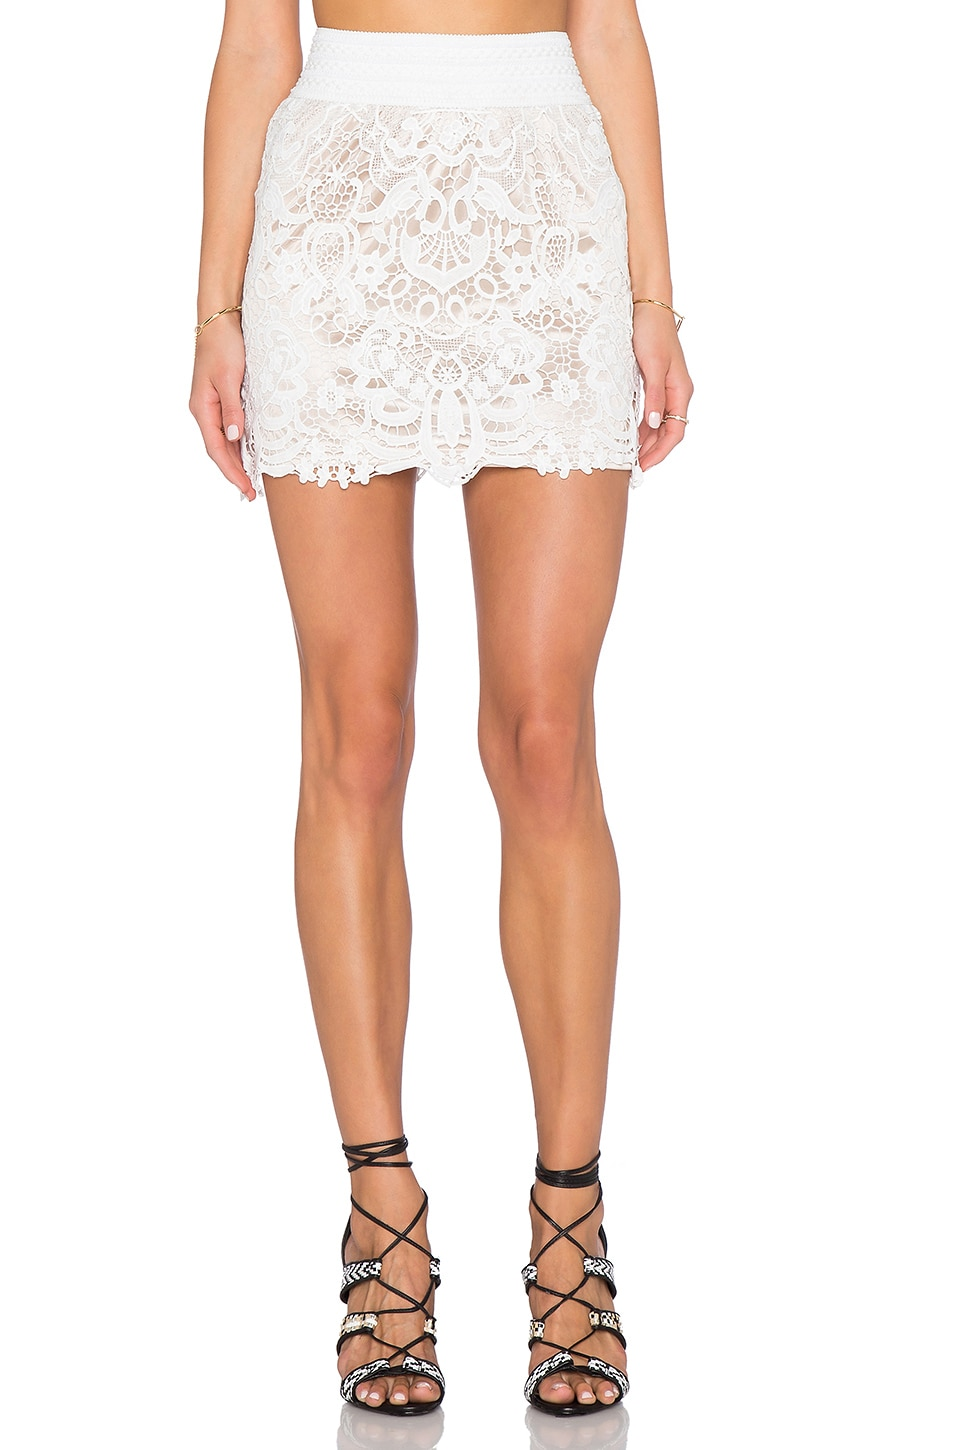 Toby Heart Ginger x Love Indie Fit For A Queen Skirt in White